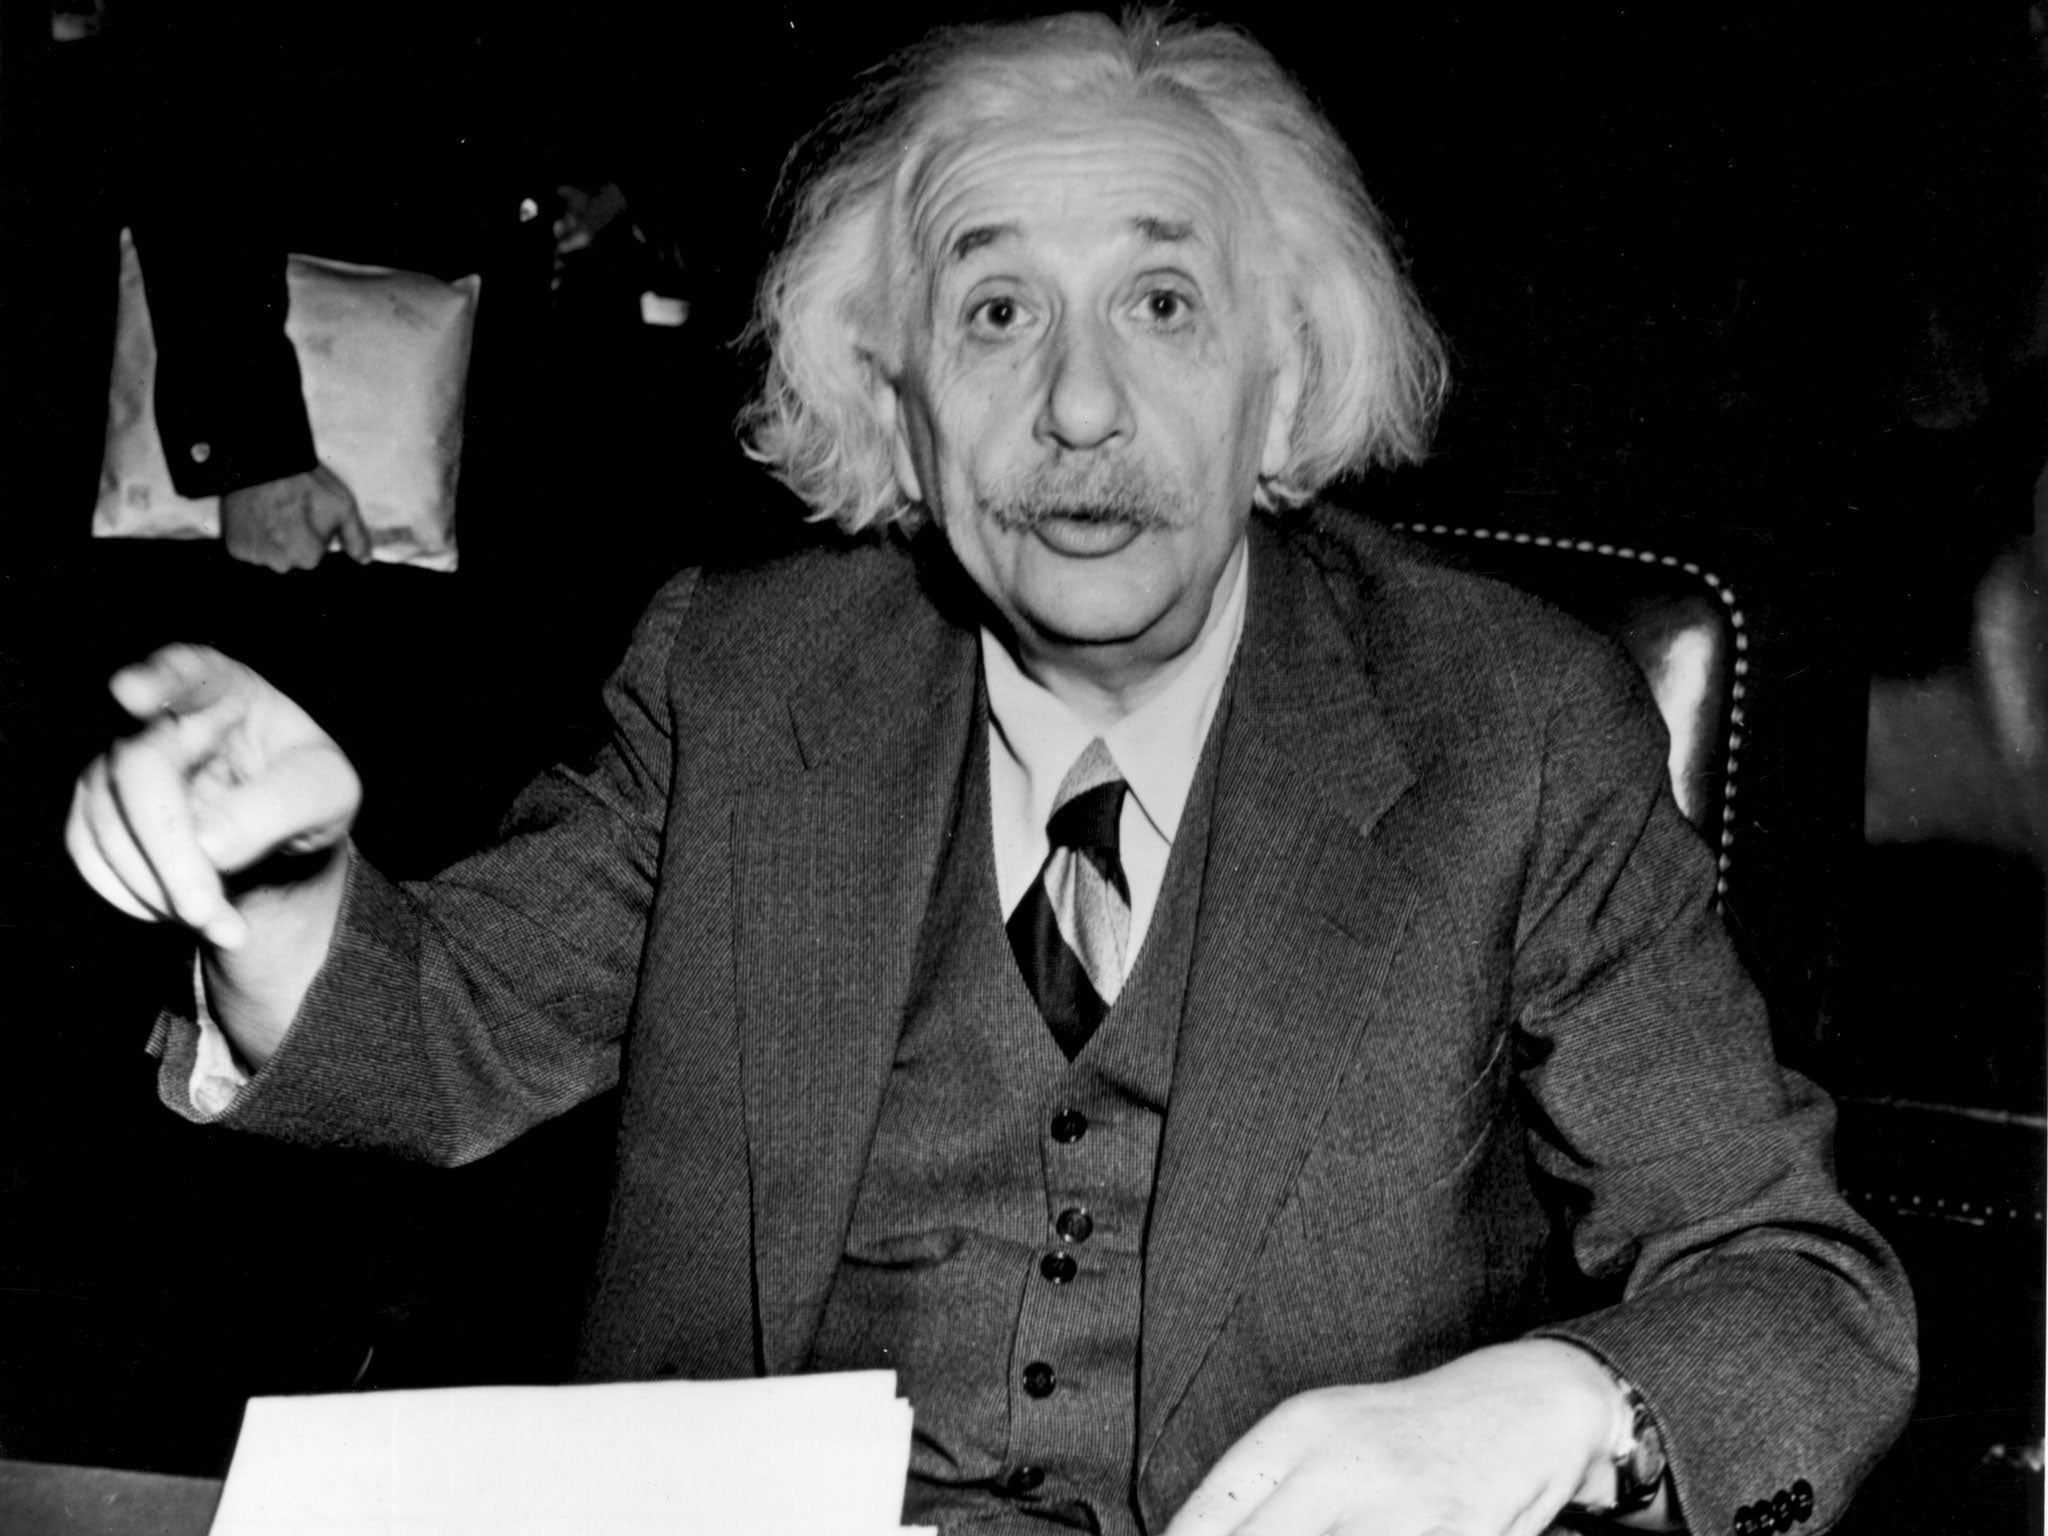 The key to Einstein's genius? An unusually 'well connected' brain